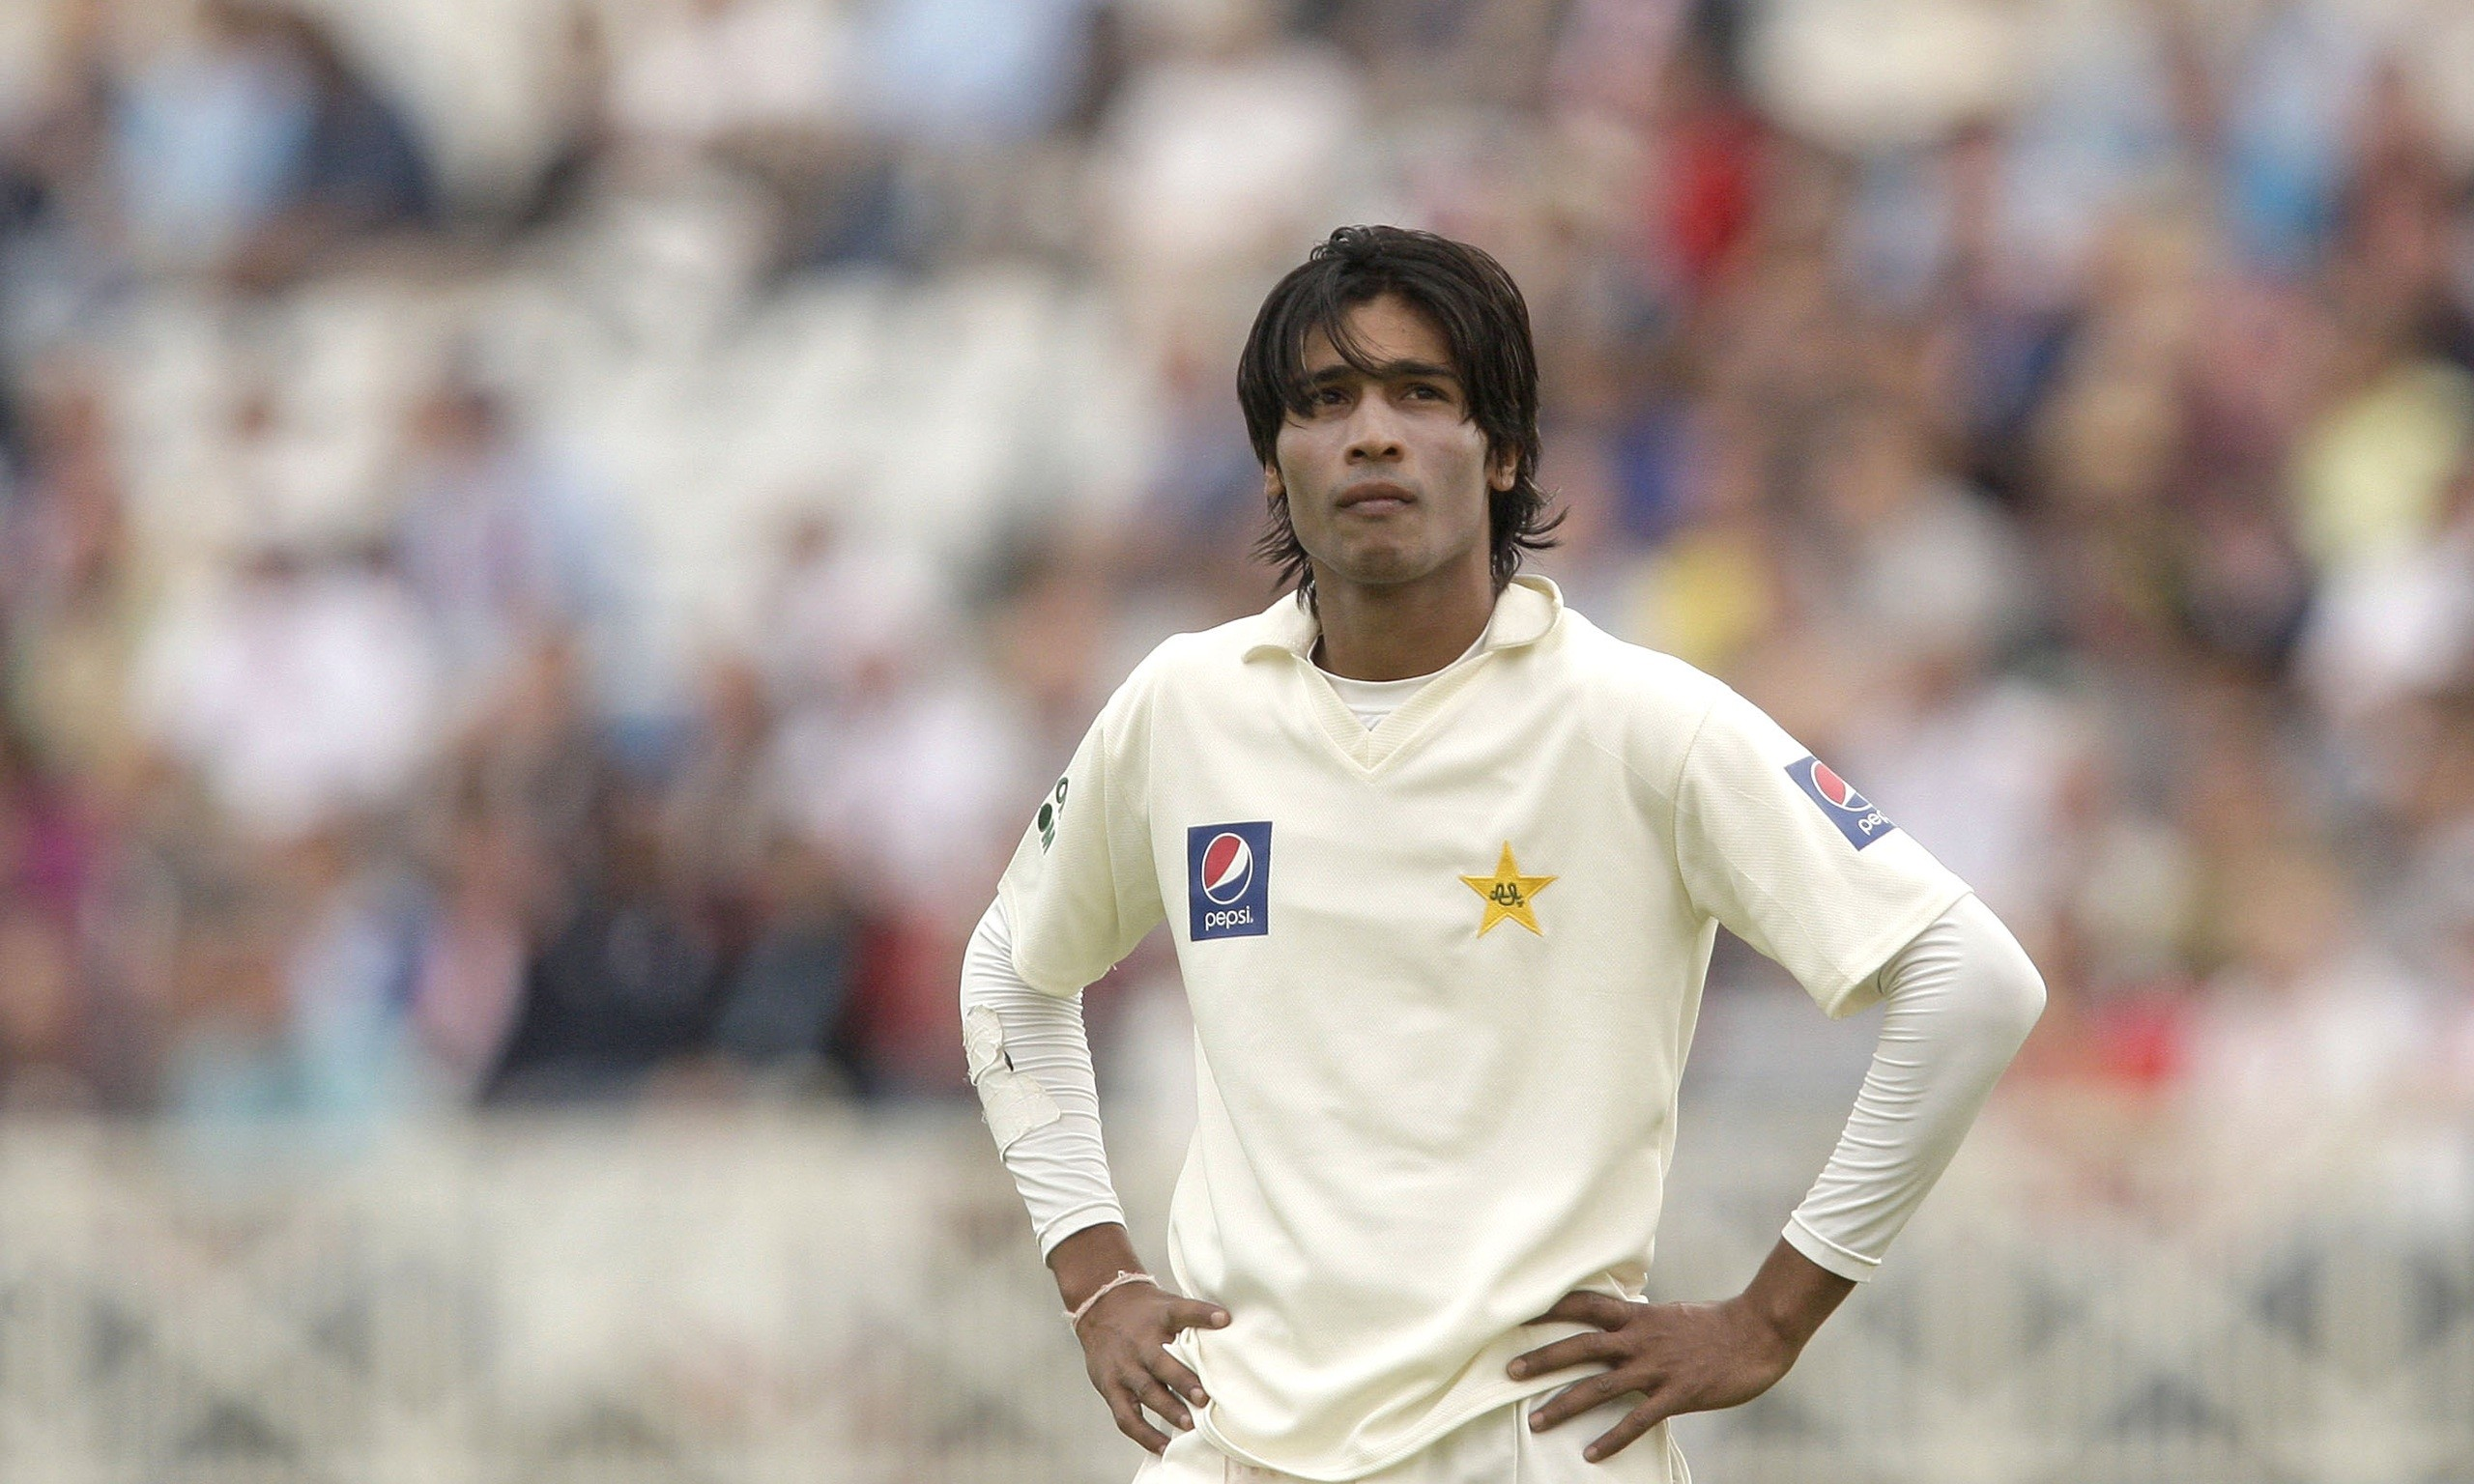 ICC clears the way for immediate return of Mohammad Amir to play domestic cricket